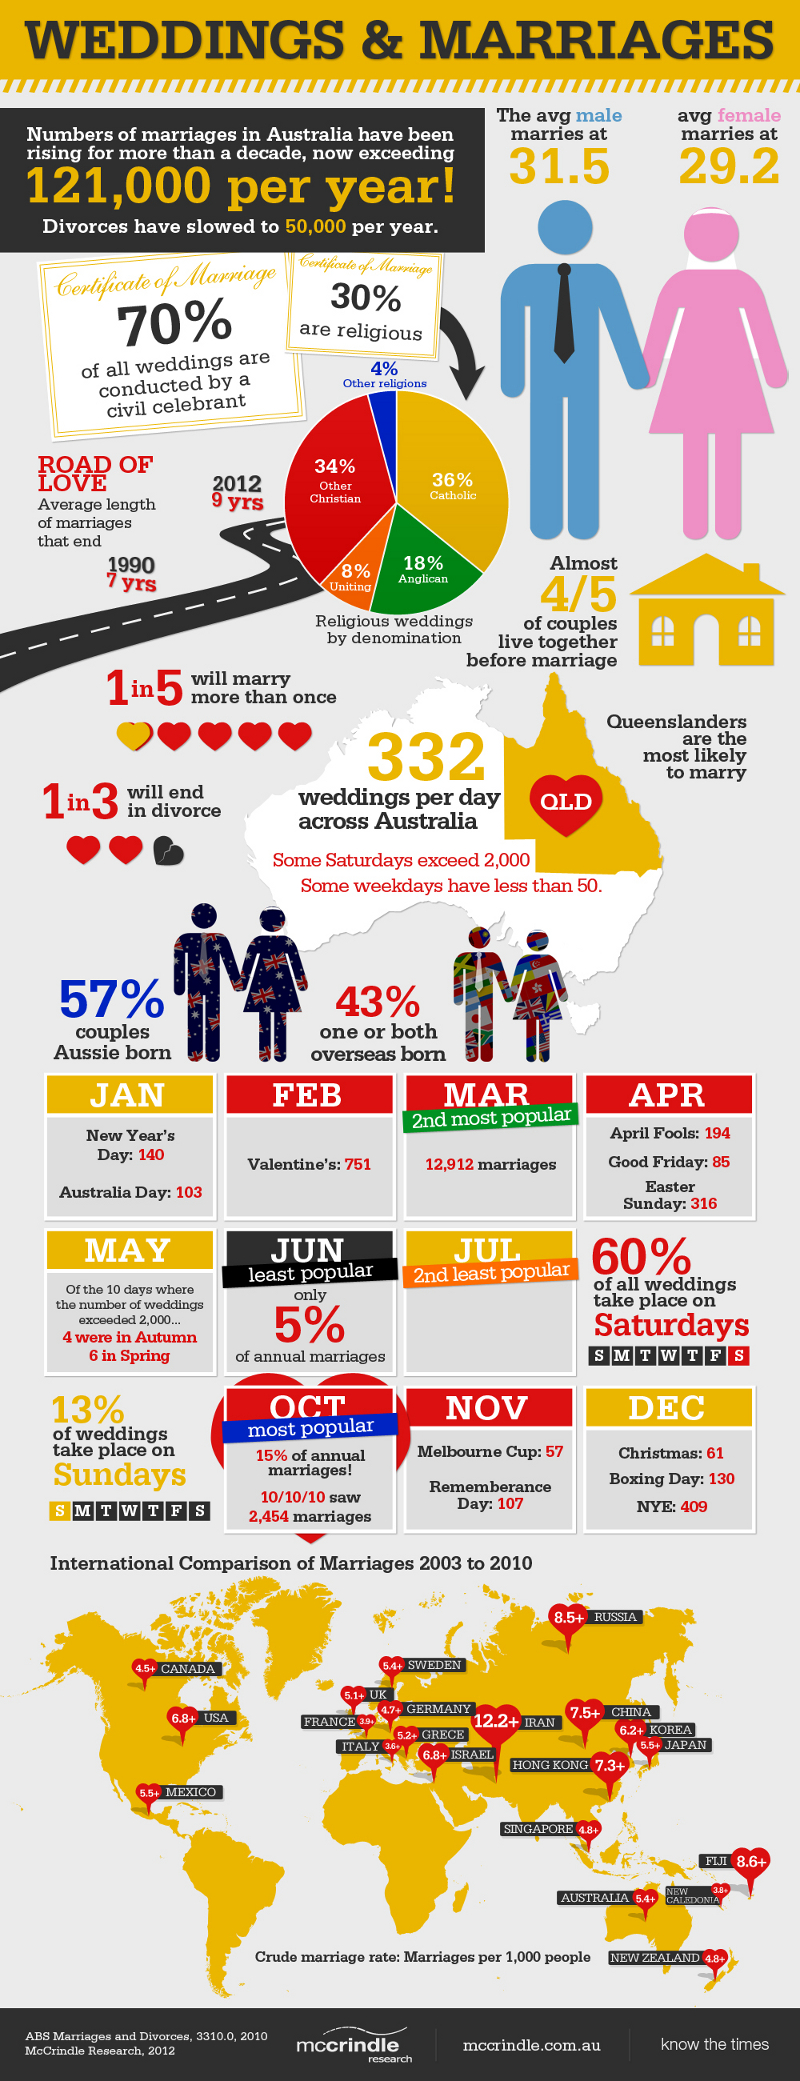 Wedding and Marriage Statistics